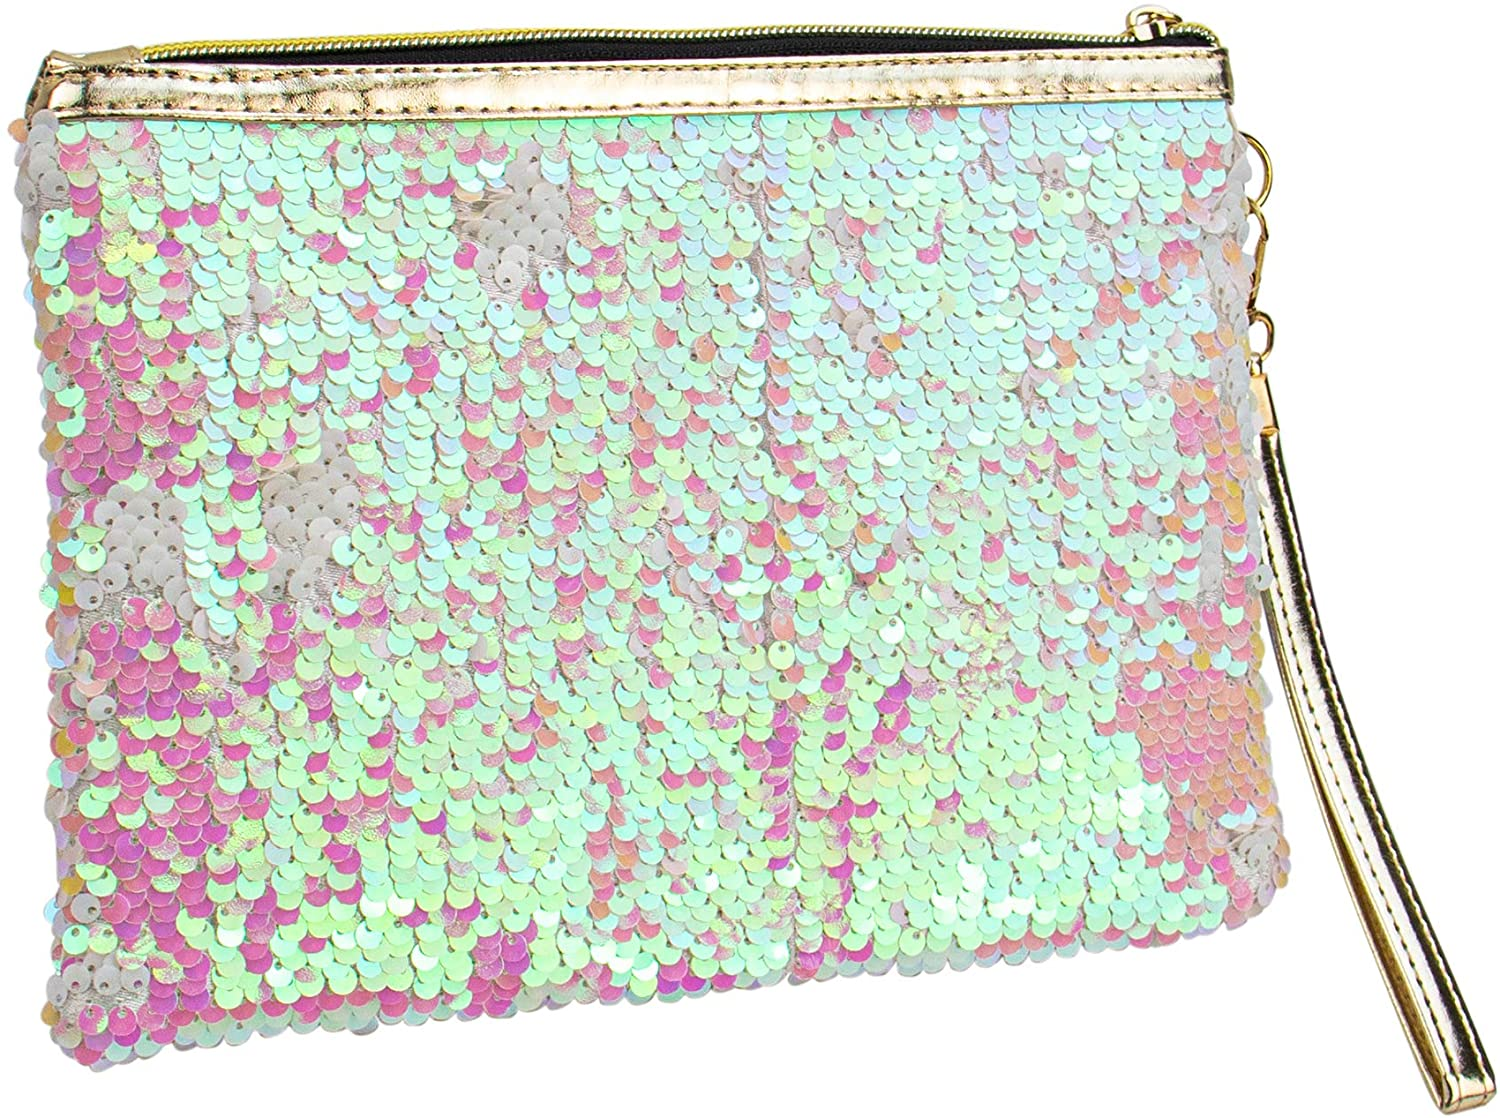 AUEAR, Sequin Makeup Bag Envelope Type Travel Portable Bag with Zipper for Women and Girls Pink